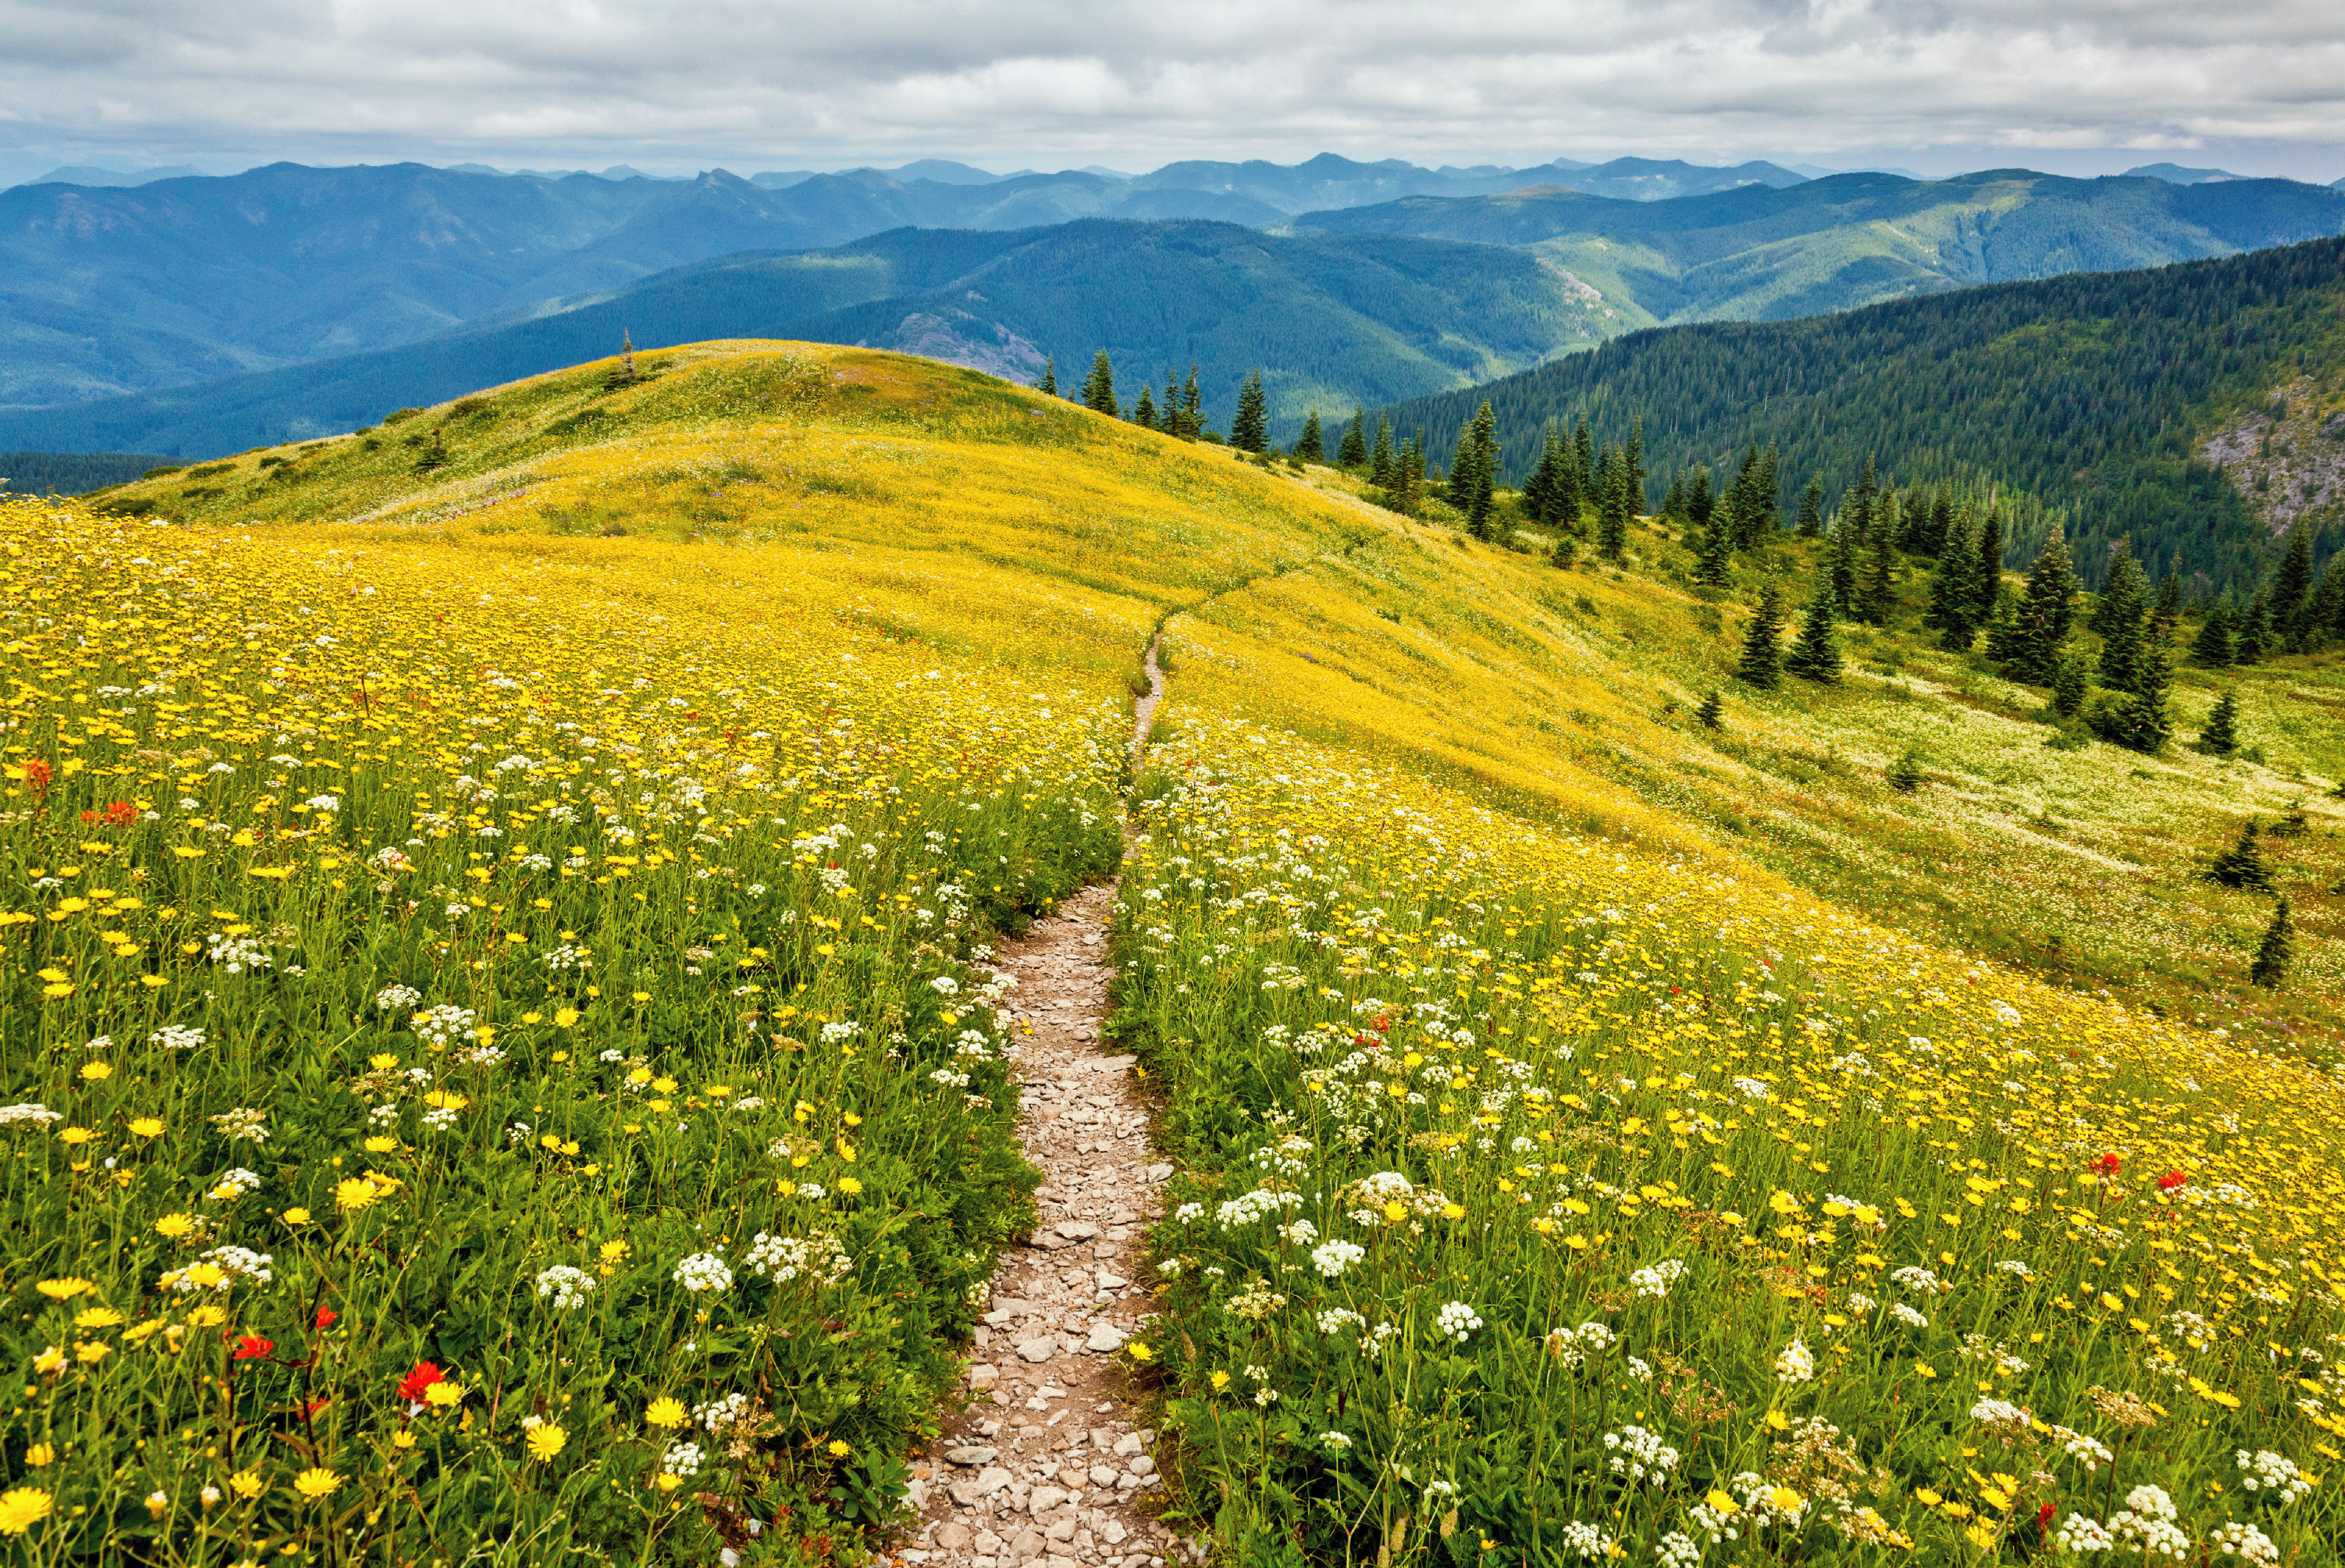 hiking trail surrounded by wildflowers